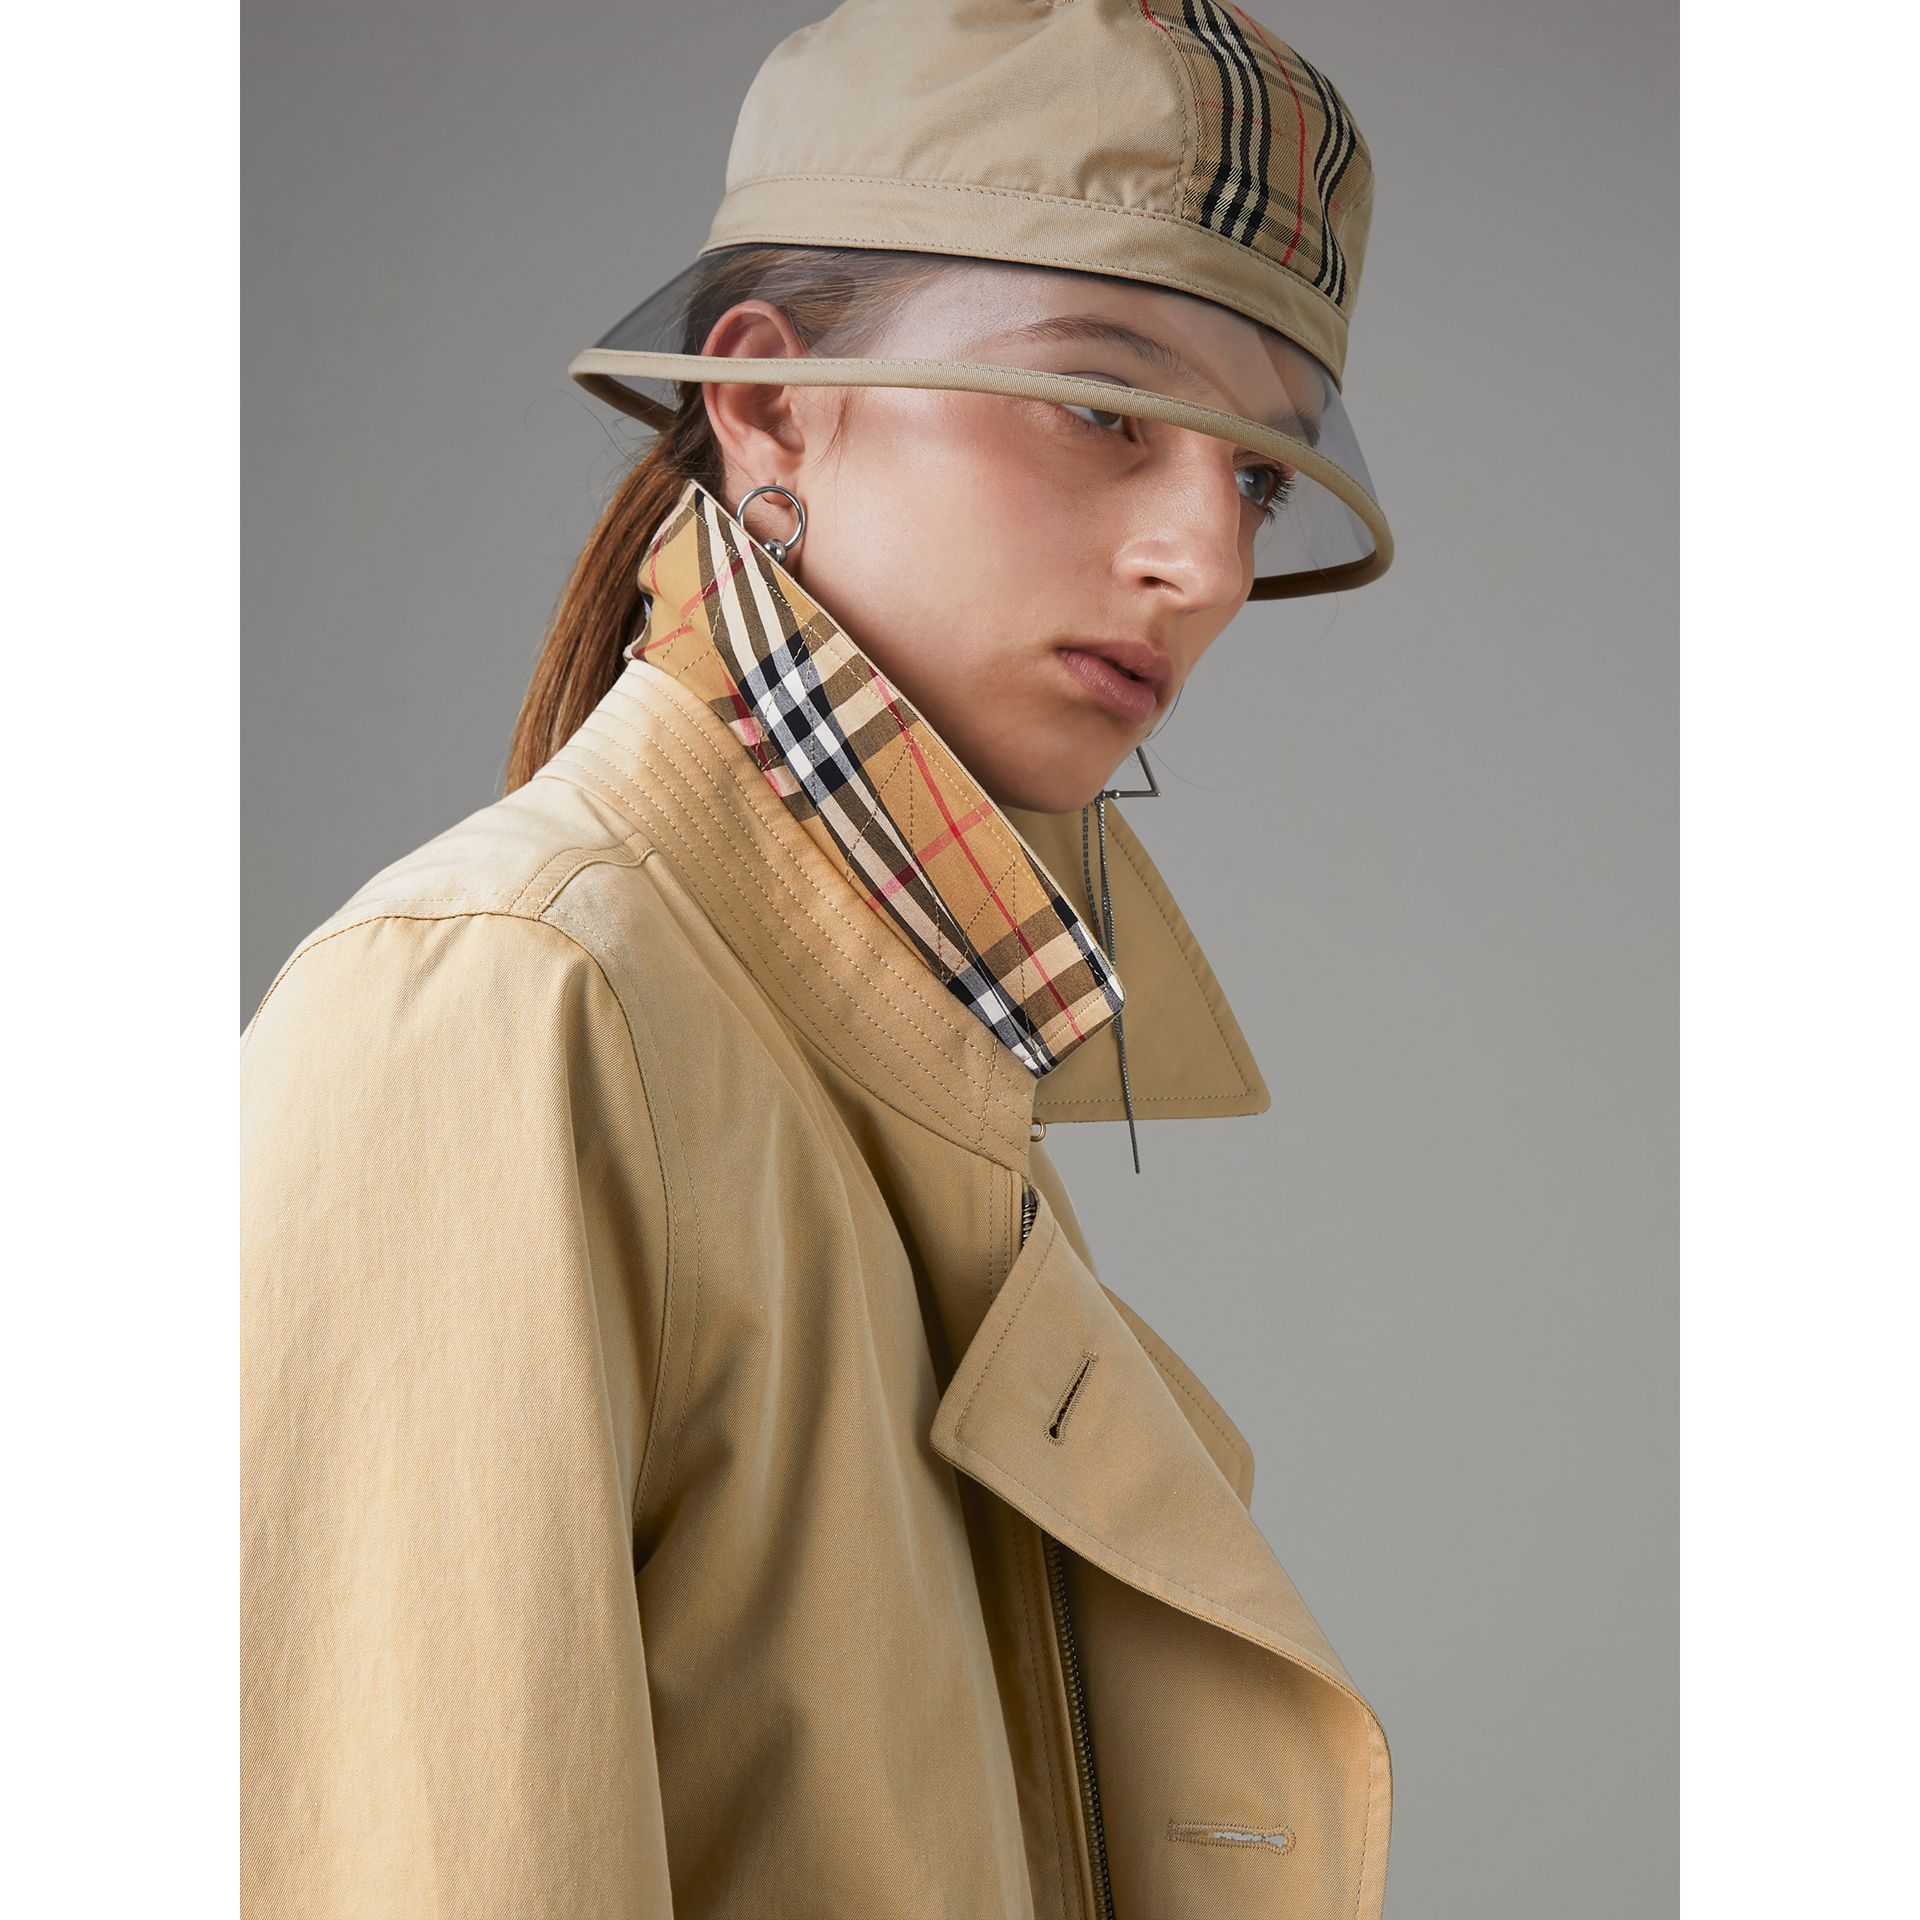 Trench coat Harrington ricostruito in gabardine tropicale (Miele) - Donna | Burberry - immagine della galleria 4